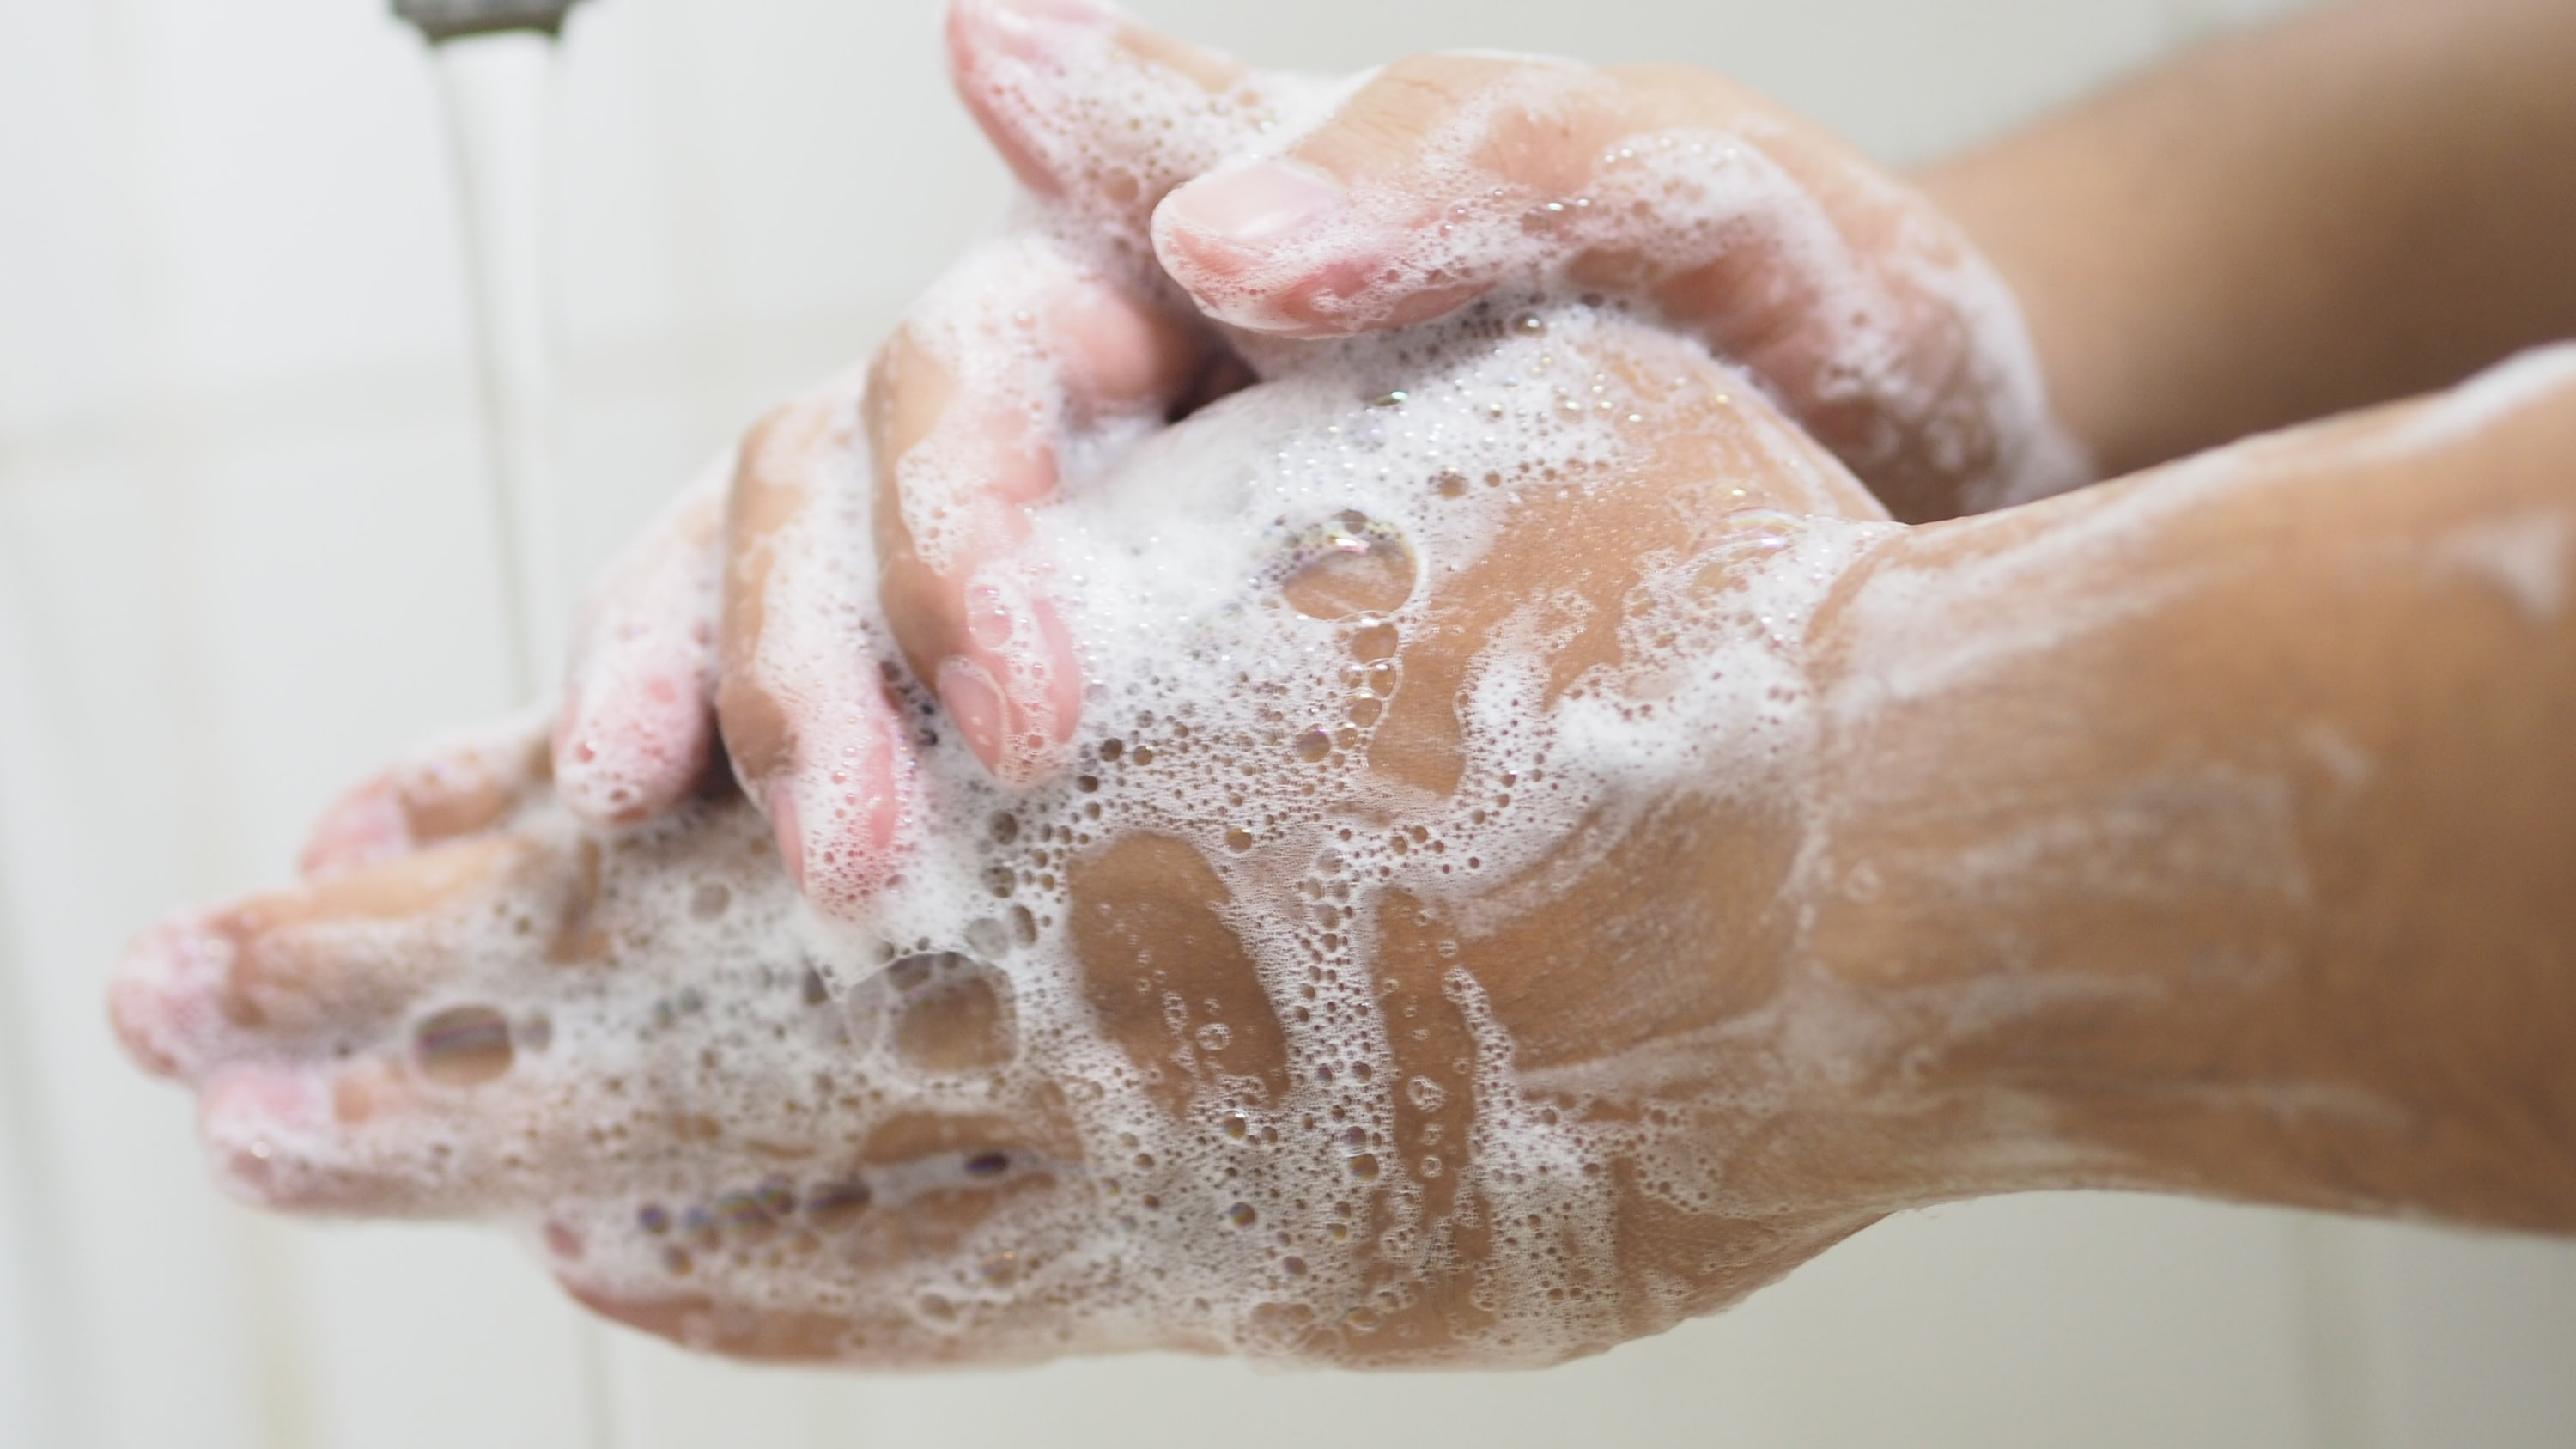 washing hands to prevent spread of COVID-19